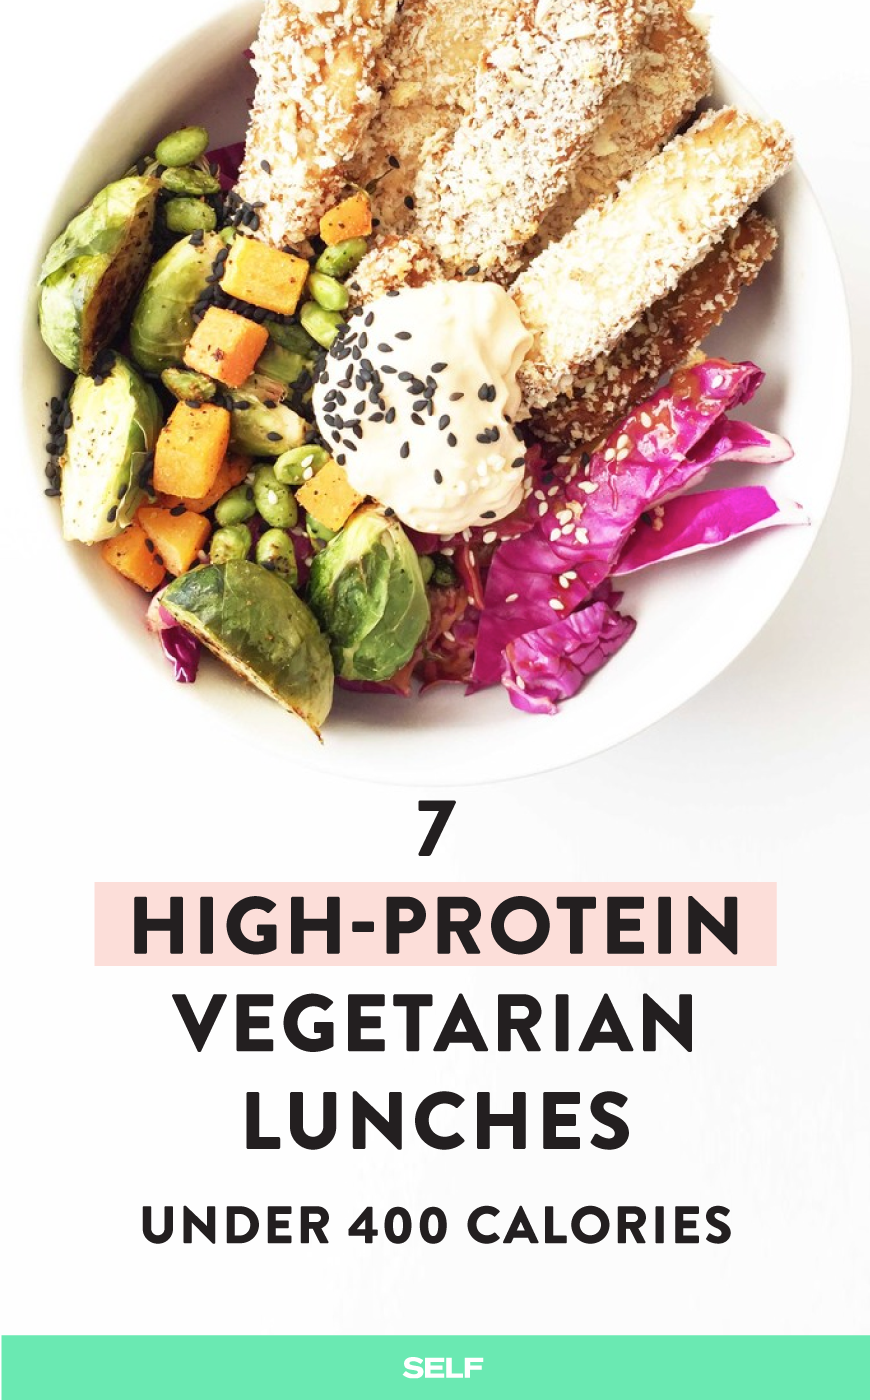 7 High Protein Vegetarian Lunches Under 400 Calories